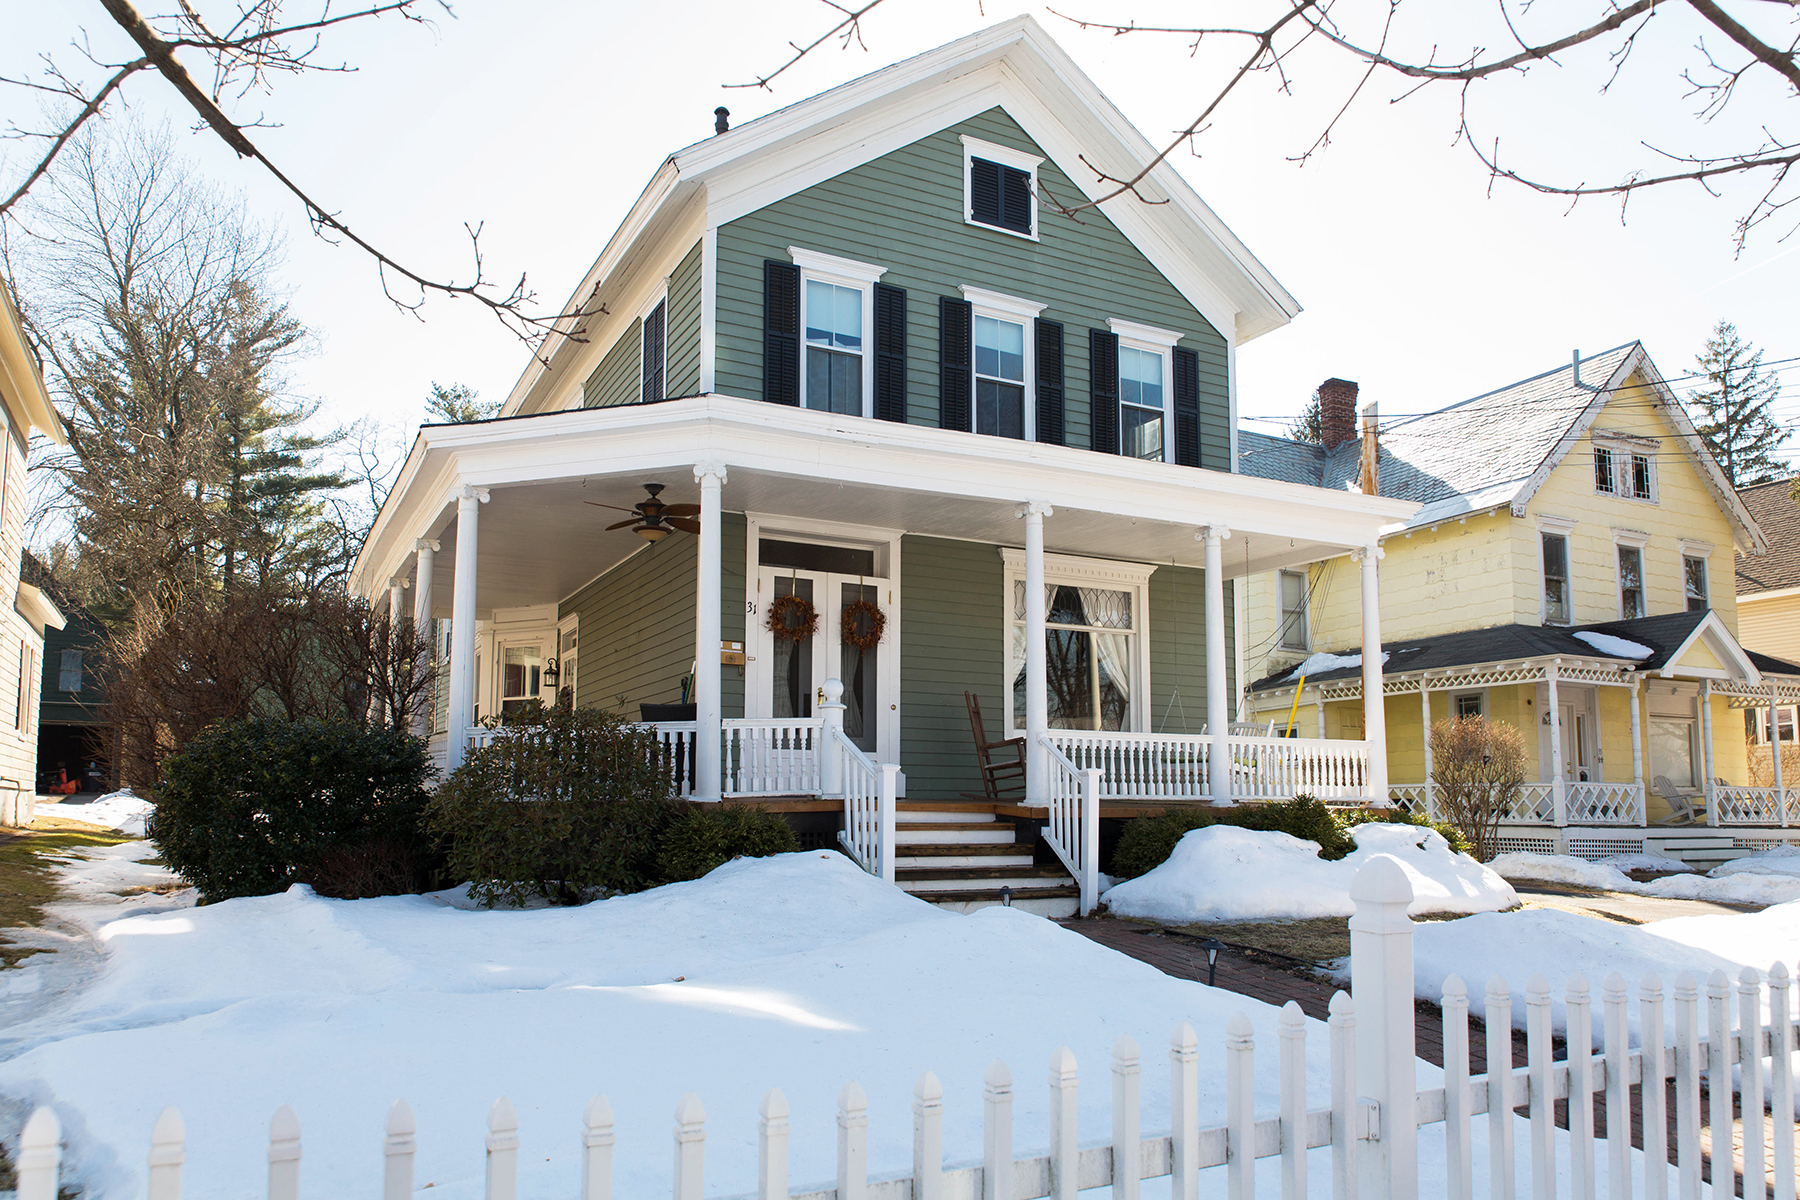 Single Family Home for Sale at 1890's Victorian Classic 31 Mcmaster St Ballston Spa, New York 12020 United States